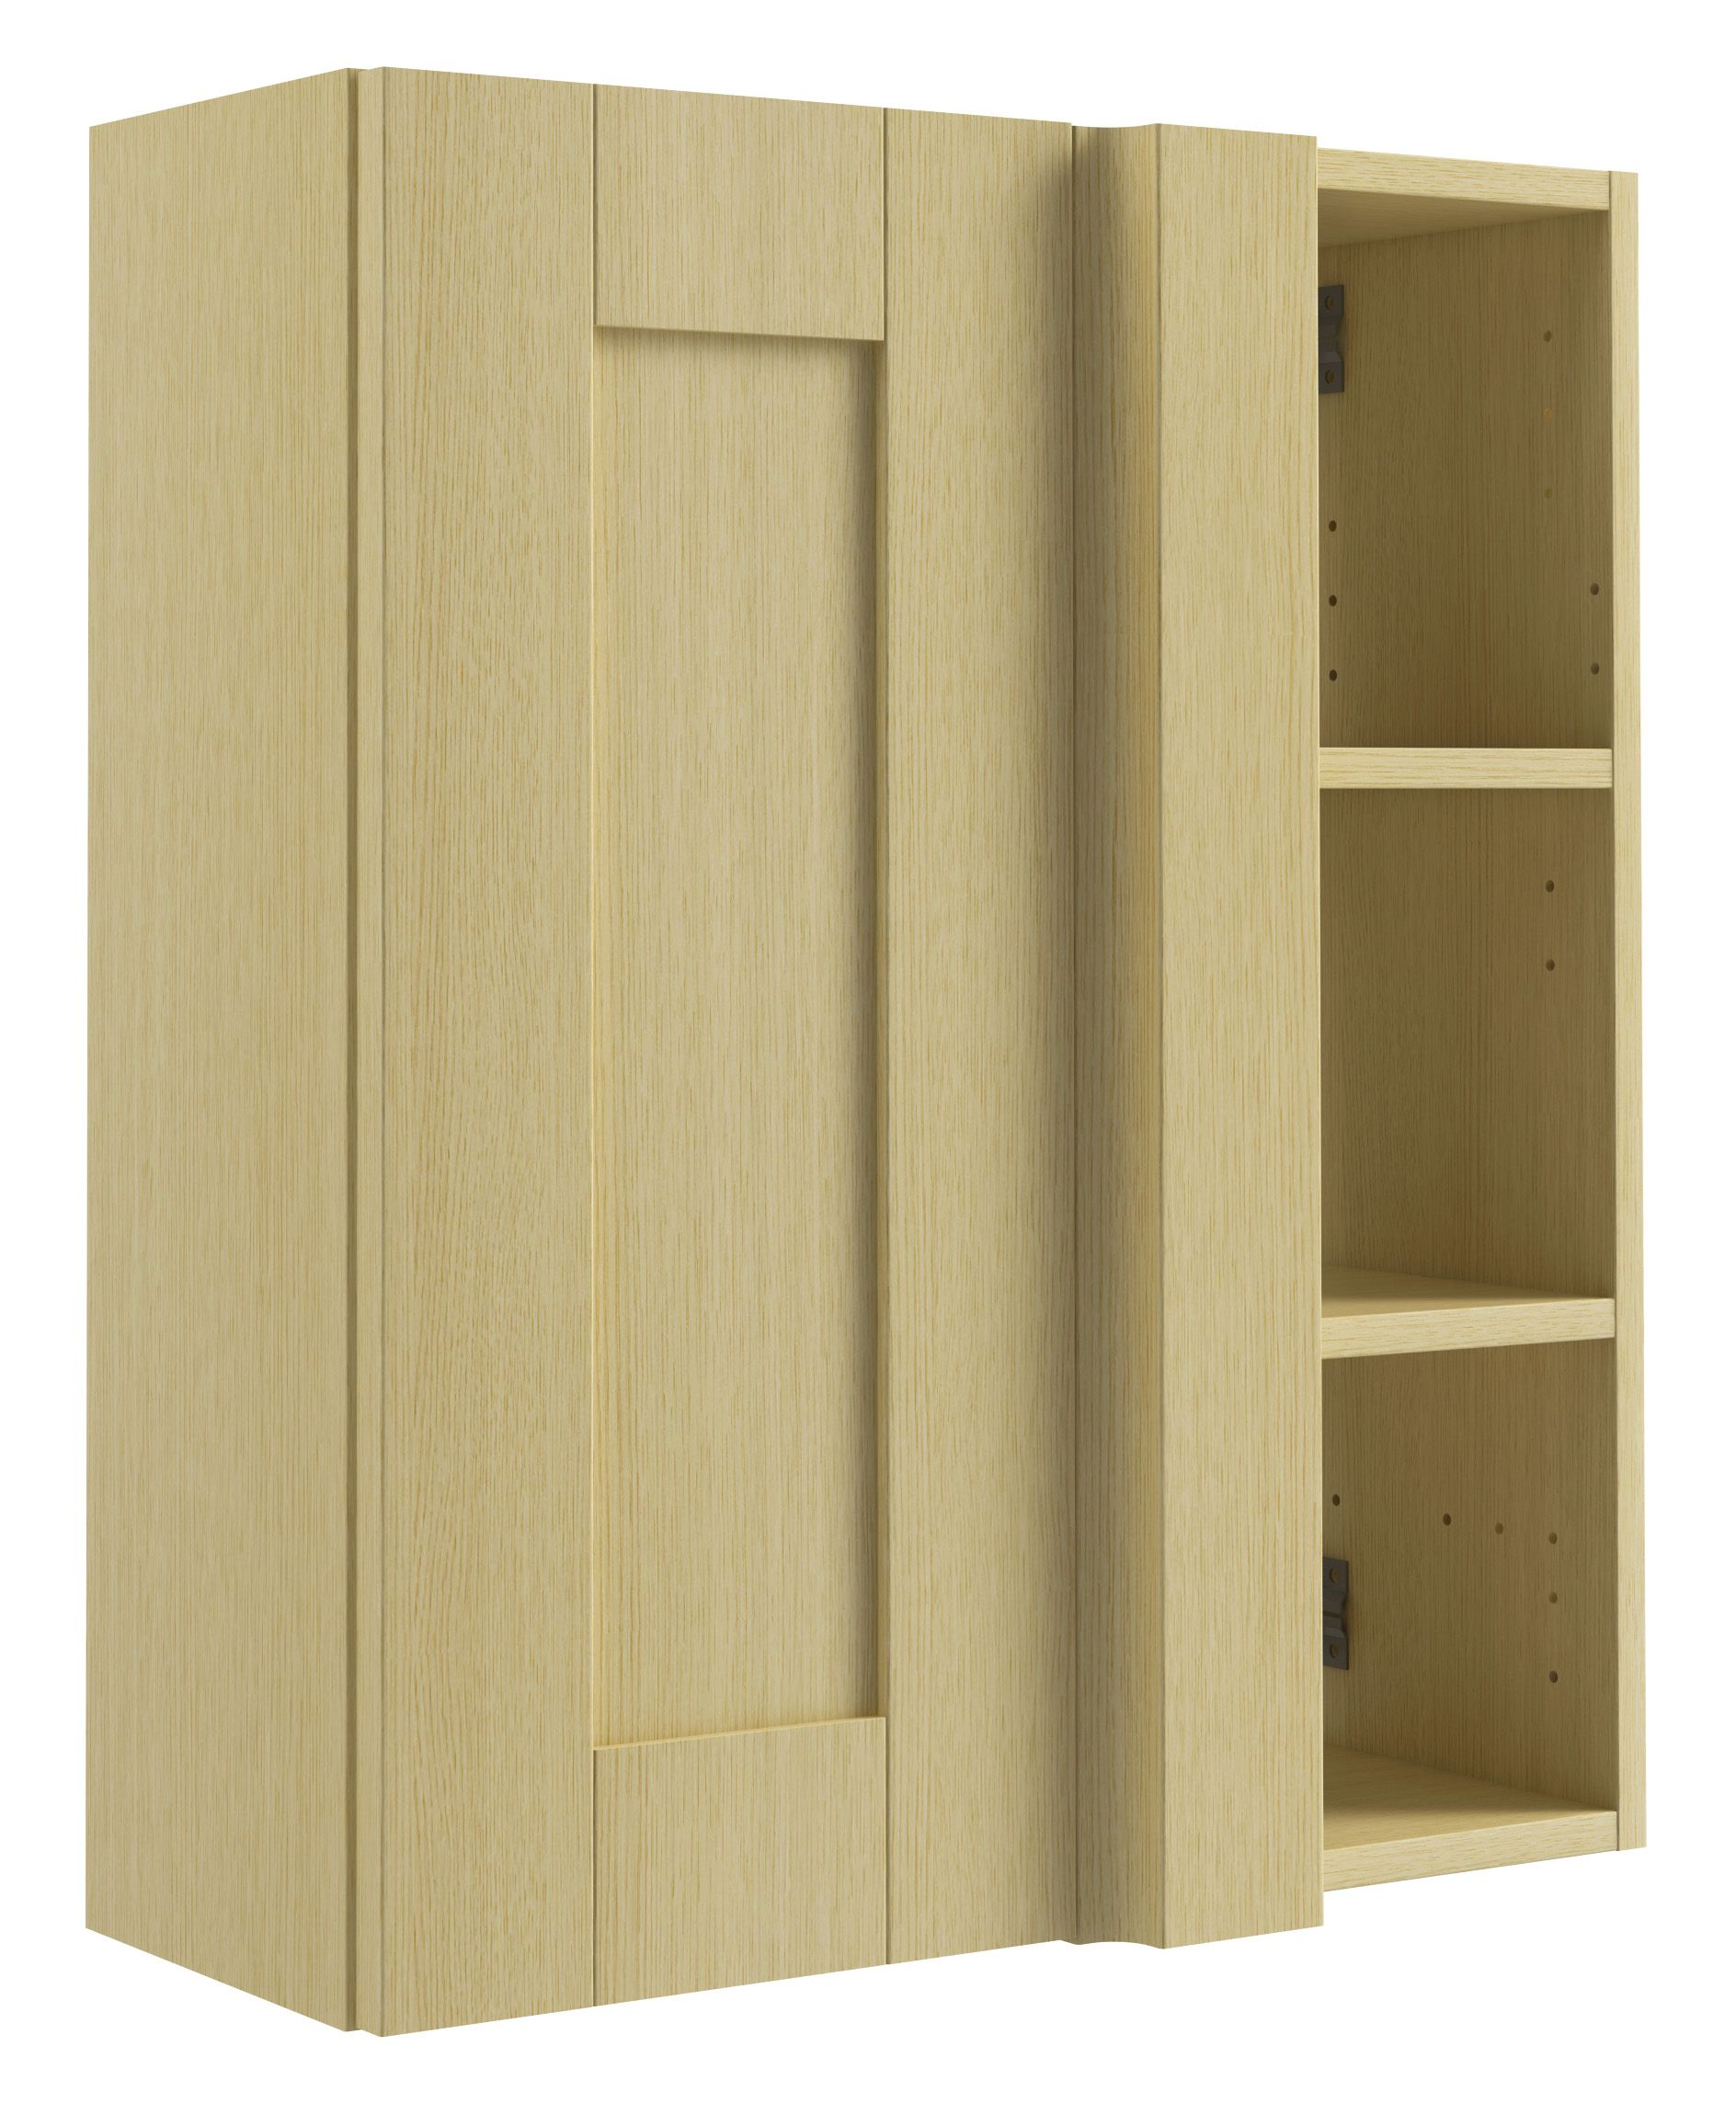 cooke lewis sorella oak effect corner wall cabinet w 50cm departments diy at b q. Black Bedroom Furniture Sets. Home Design Ideas